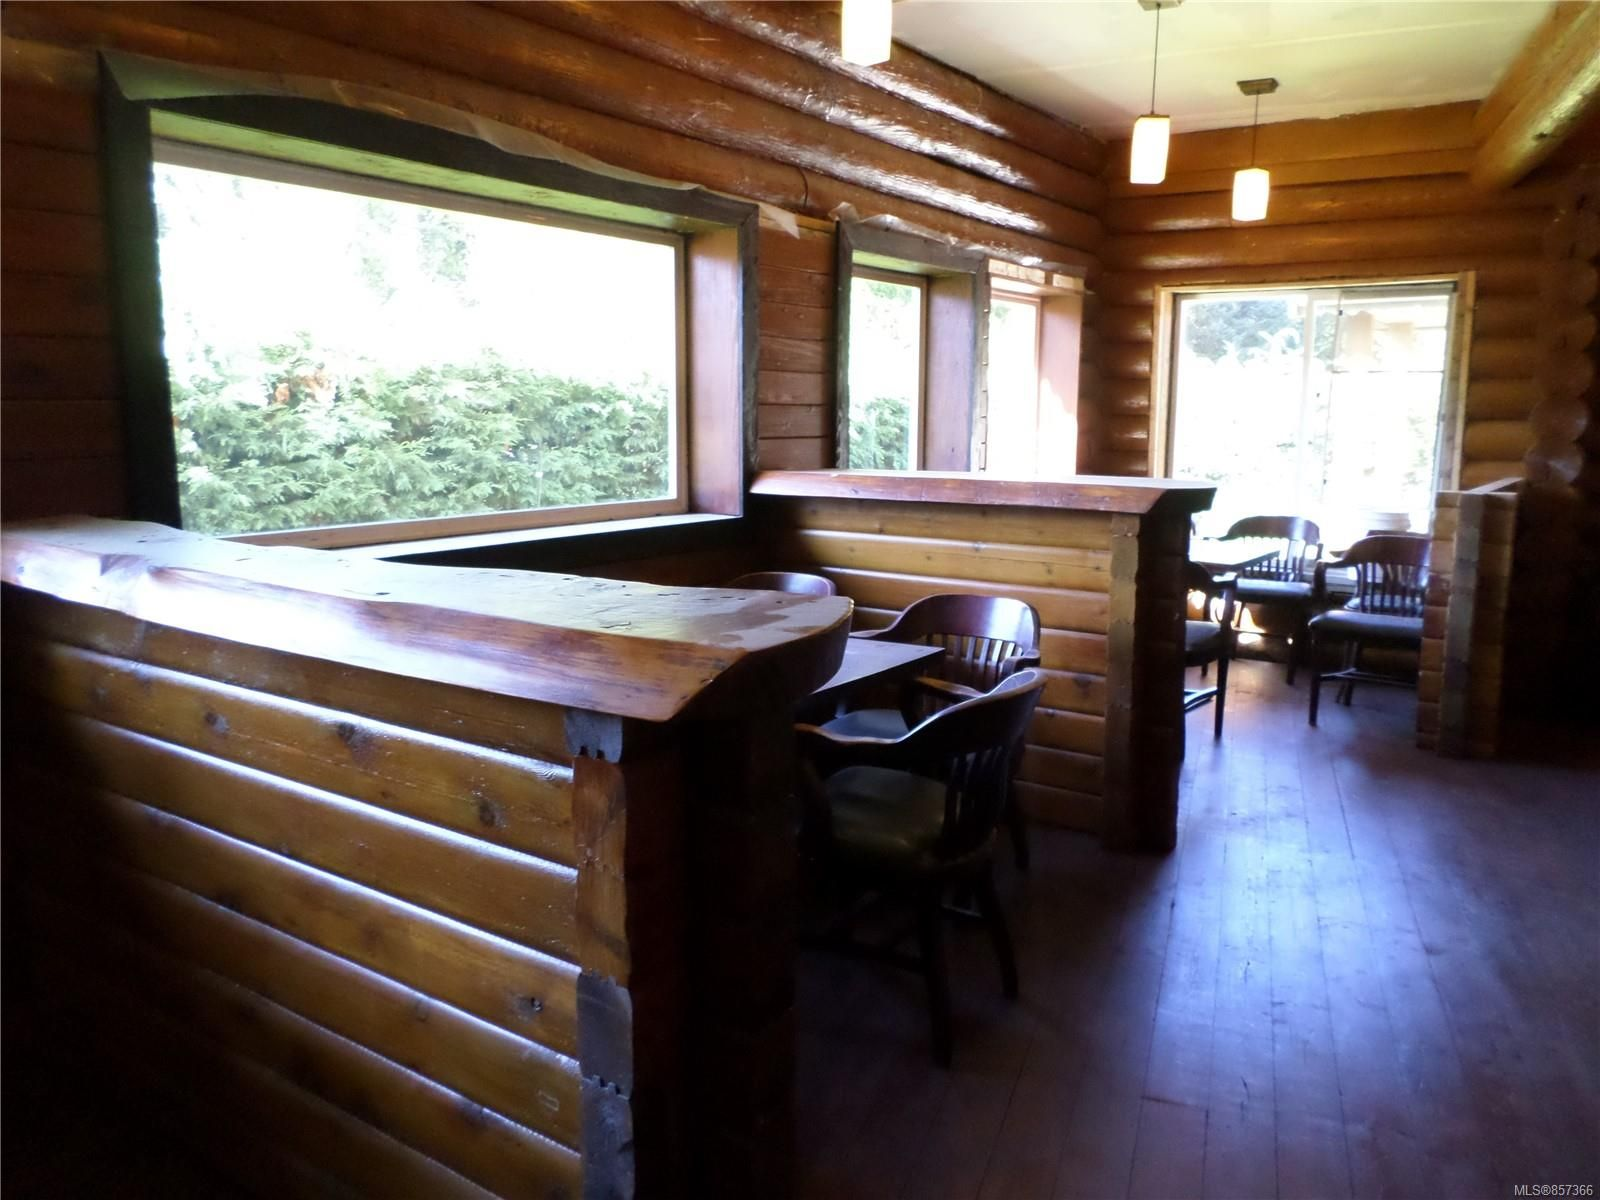 Photo 15: Photos: 1747 Nahmint Rd in : PQ Qualicum North Mixed Use for sale (Parksville/Qualicum)  : MLS®# 857366